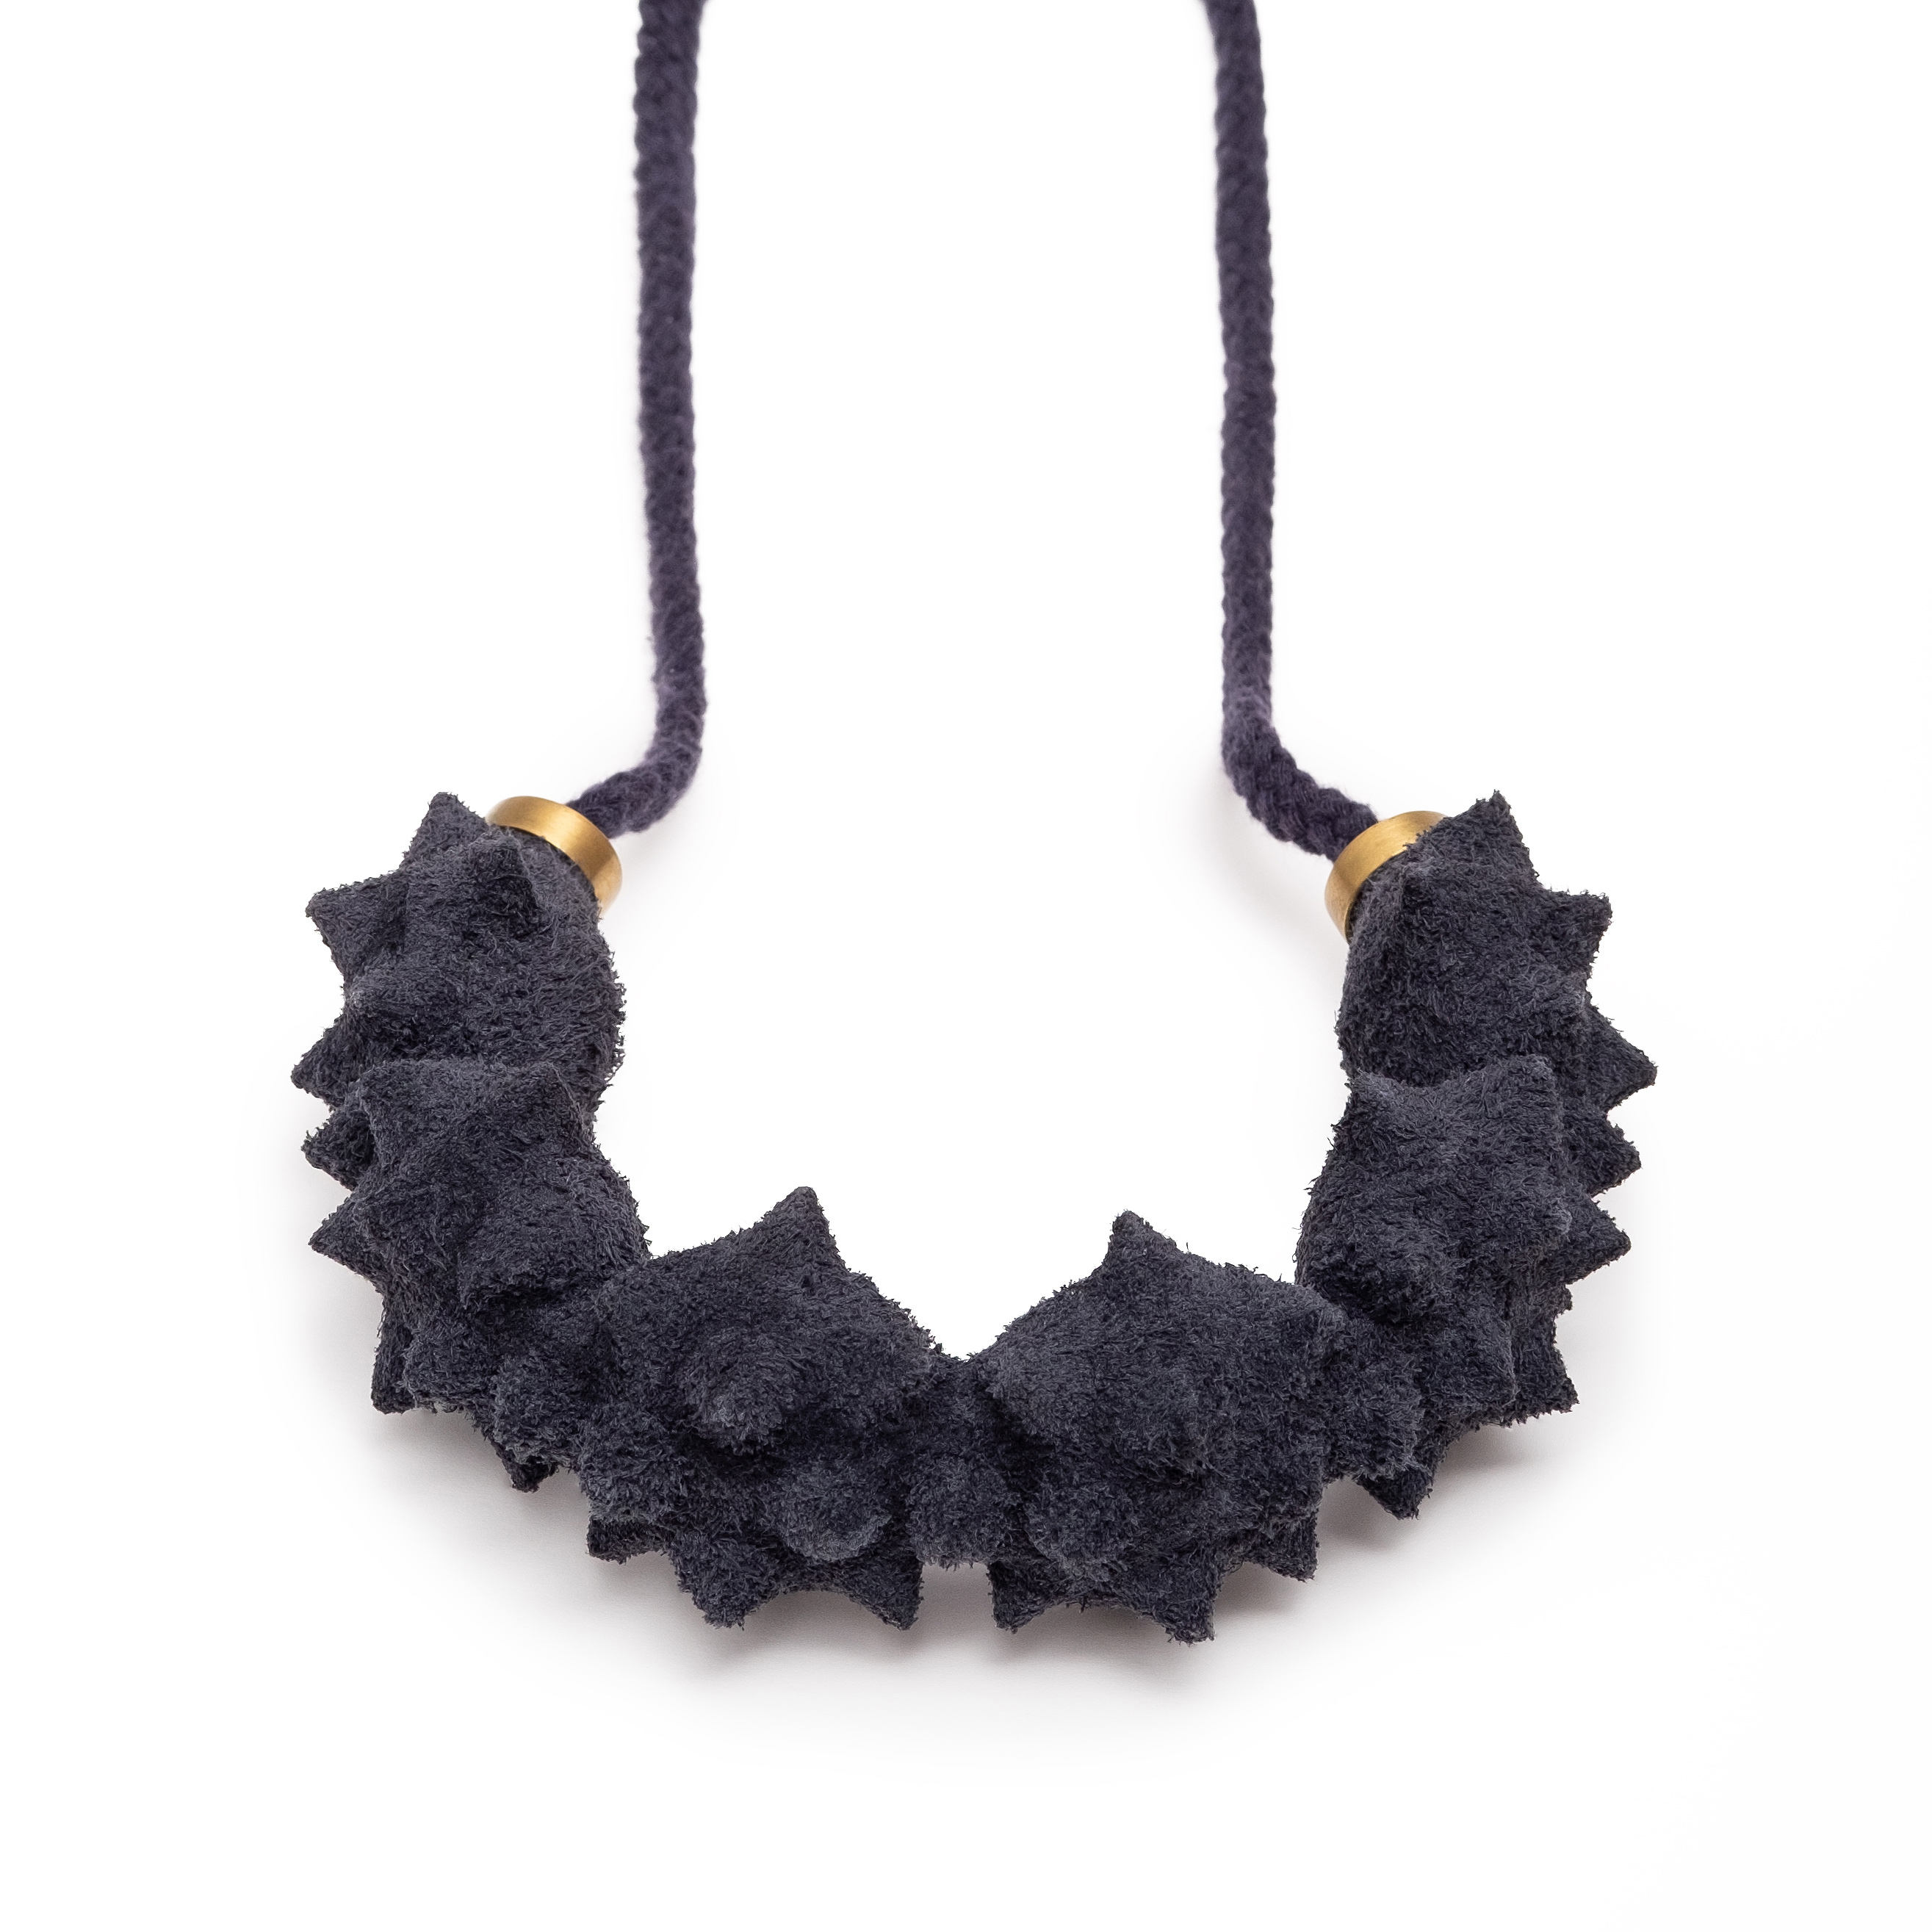 Superorder leather necklace